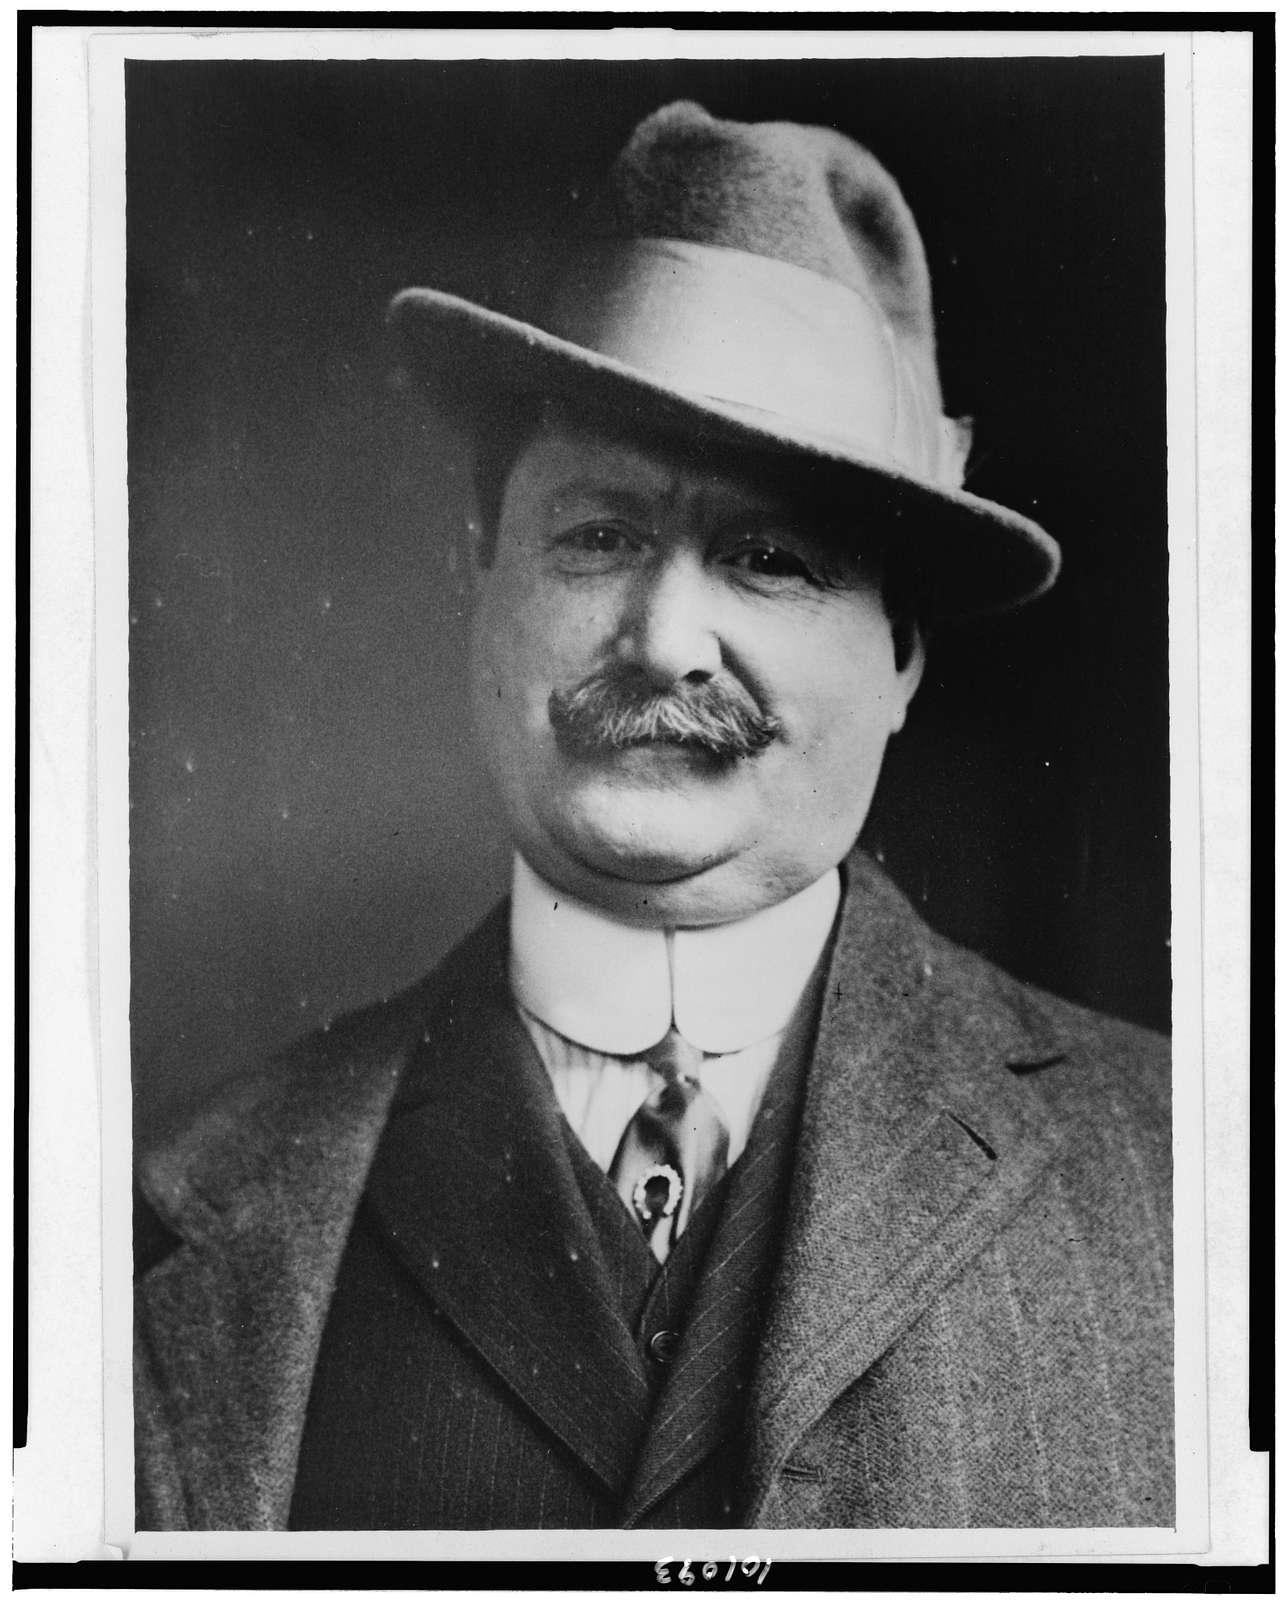 [William John Burns, detective, witness in Sinclair jury scandal, head-and-shoulders portrait, facing front] / Photo by Bain News Service, New York.